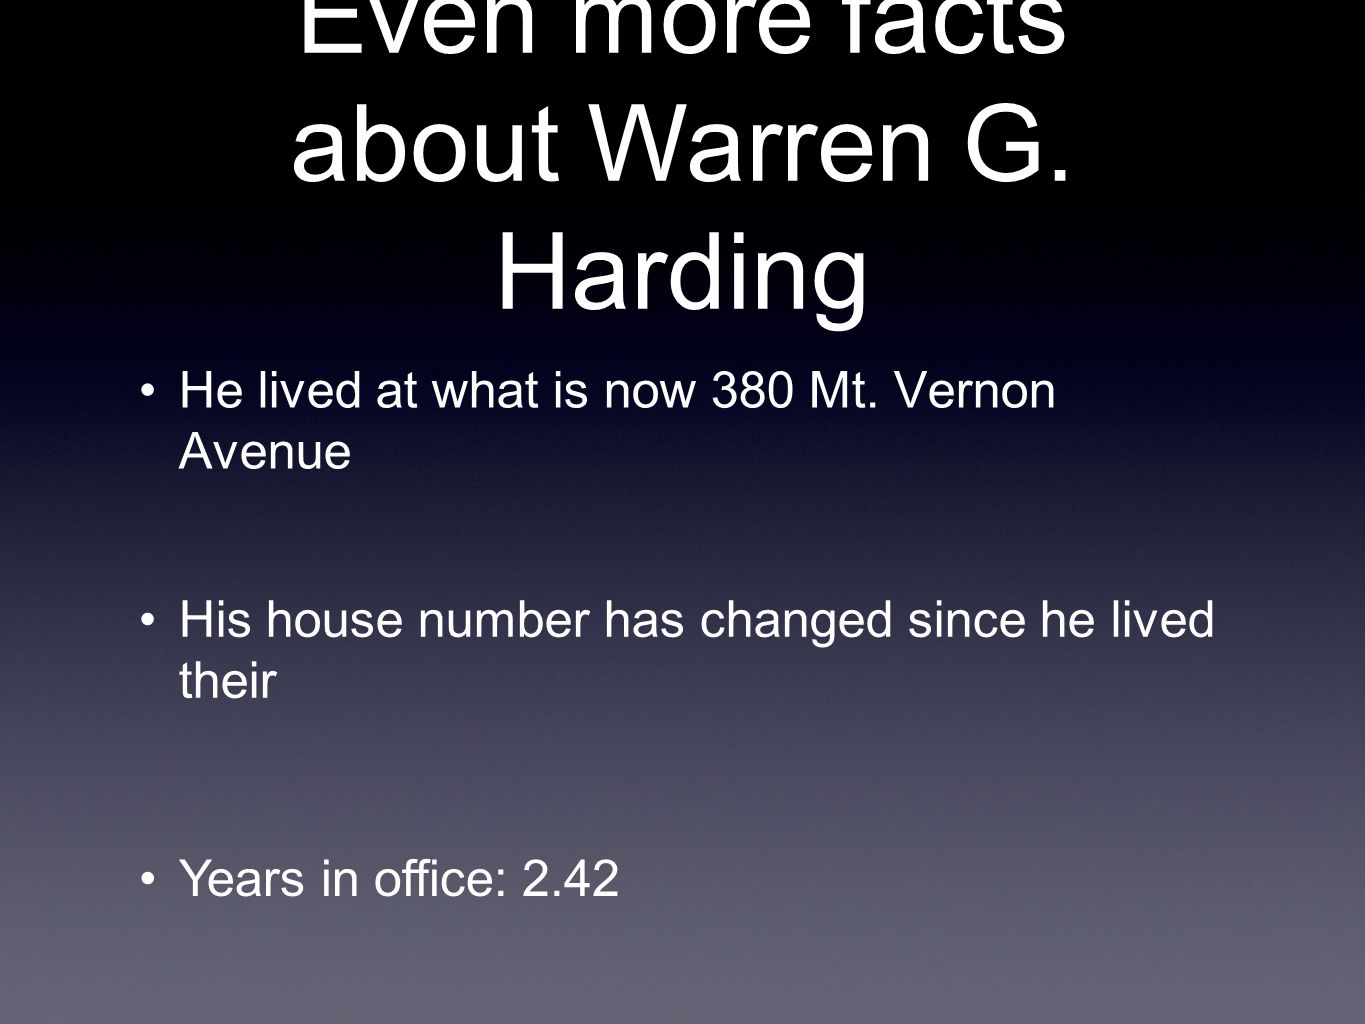 He lived at what is now 380 Mt.Vernon Avenue Even more facts about Warren G.